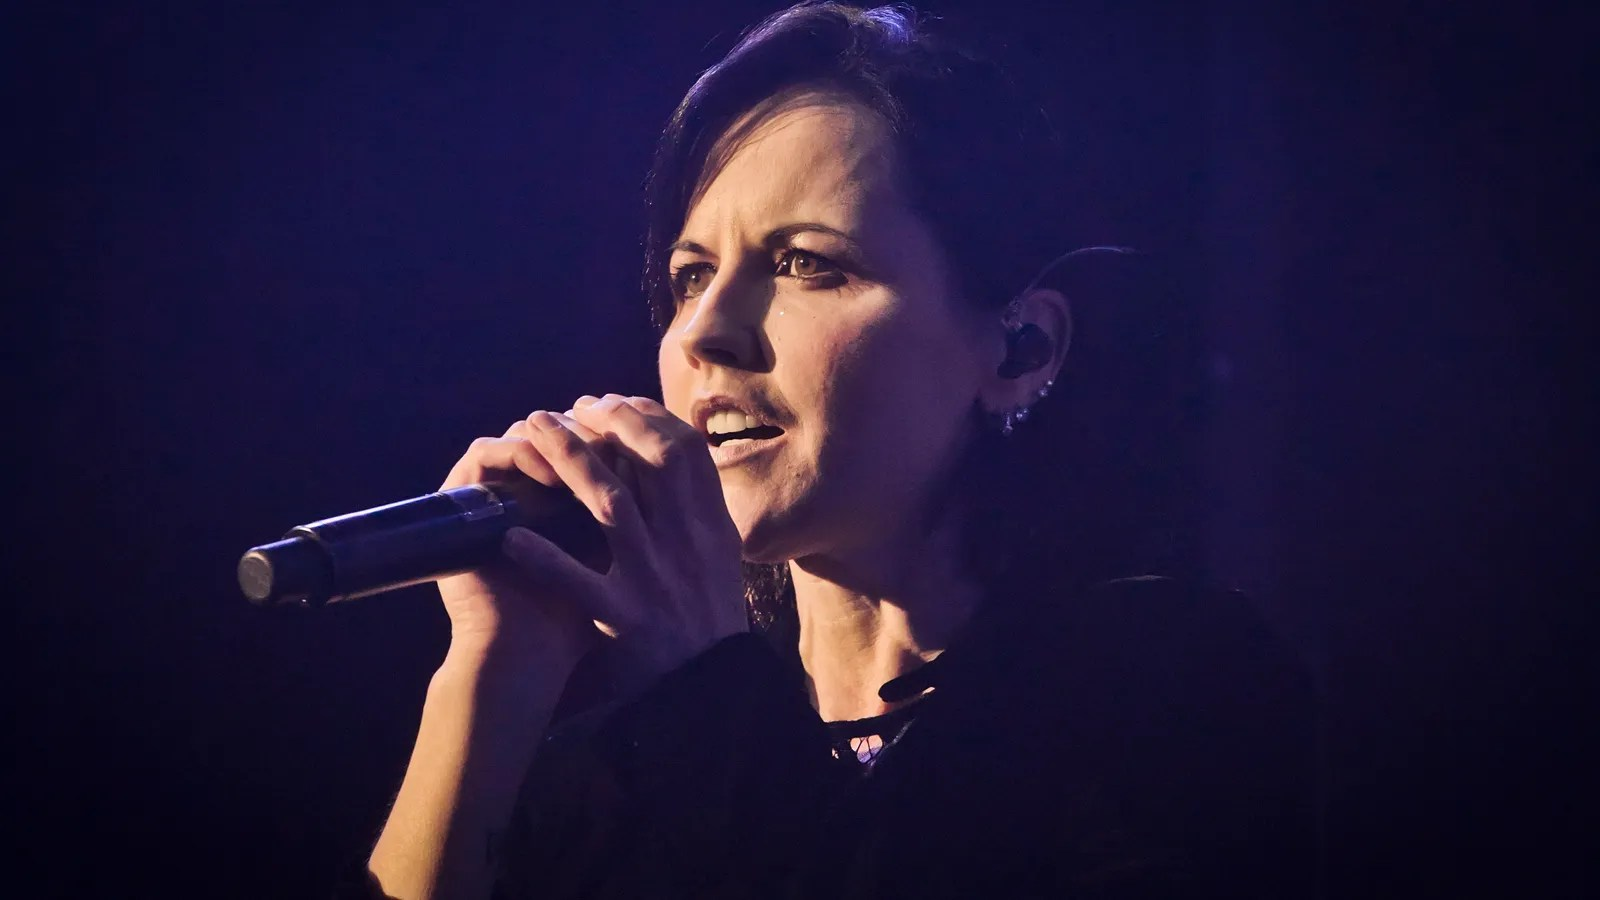 Cranberries singer Dolores O Riordan died in a  tragic accident     Cranberries singer Dolores O Riordan died in a  tragic accident   coroner  reveals